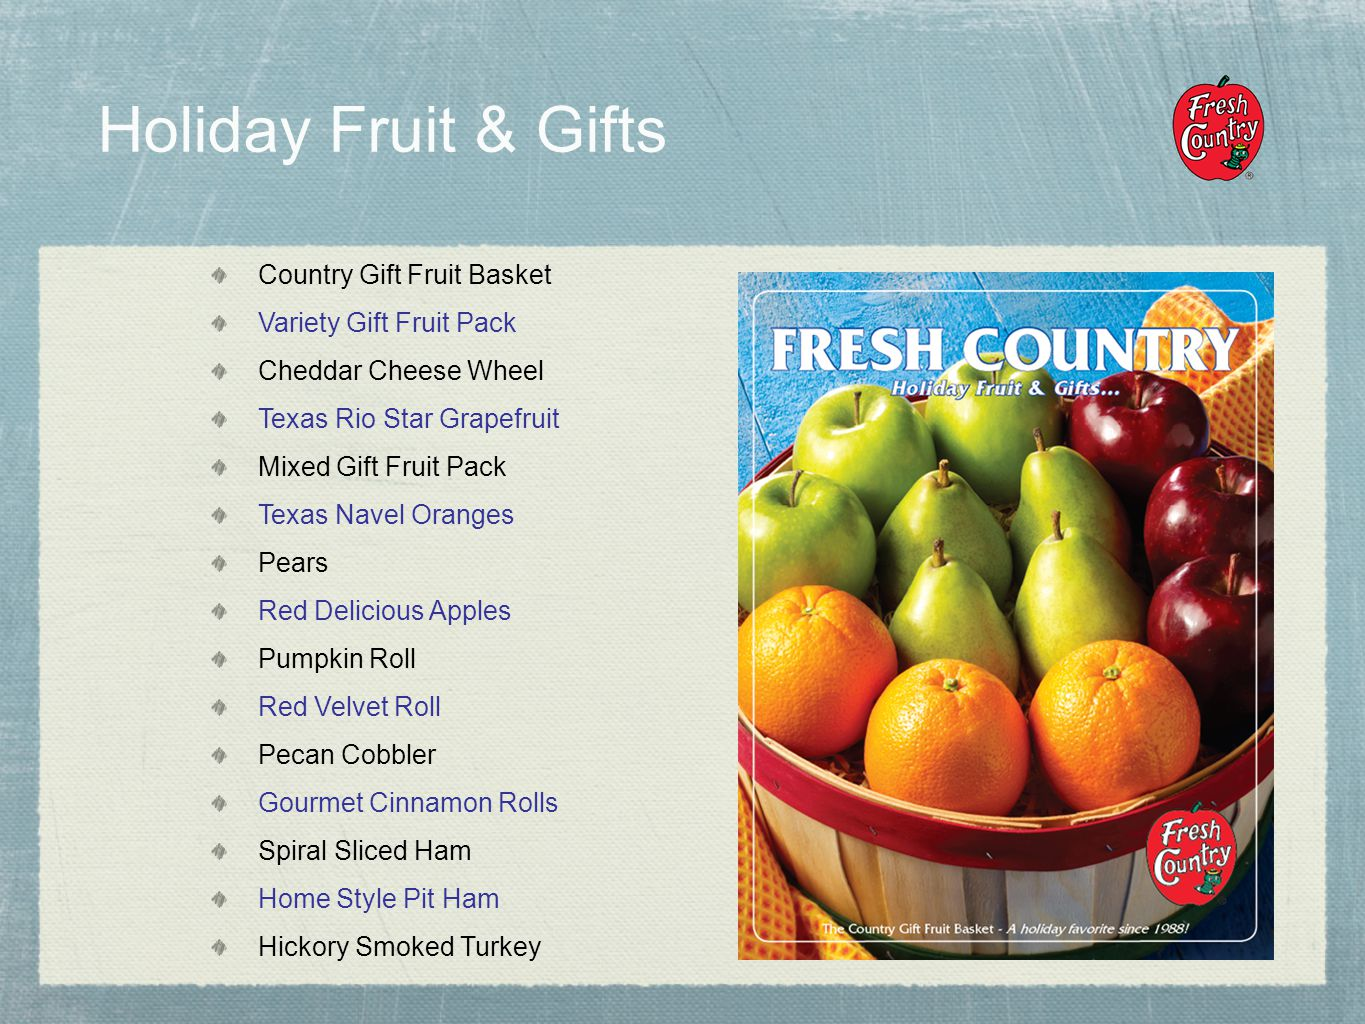 Holiday Fruit & Gifts Country Gift Fruit Basket Variety Gift Fruit Pack Cheddar Cheese Wheel Texas Rio Star Grapefruit Mixed Gift Fruit Pack Texas Navel Oranges Pears Red Delicious Apples Pumpkin Roll Red Velvet Roll Pecan Cobbler Gourmet Cinnamon Rolls Spiral Sliced Ham Home Style Pit Ham Hickory Smoked Turkey